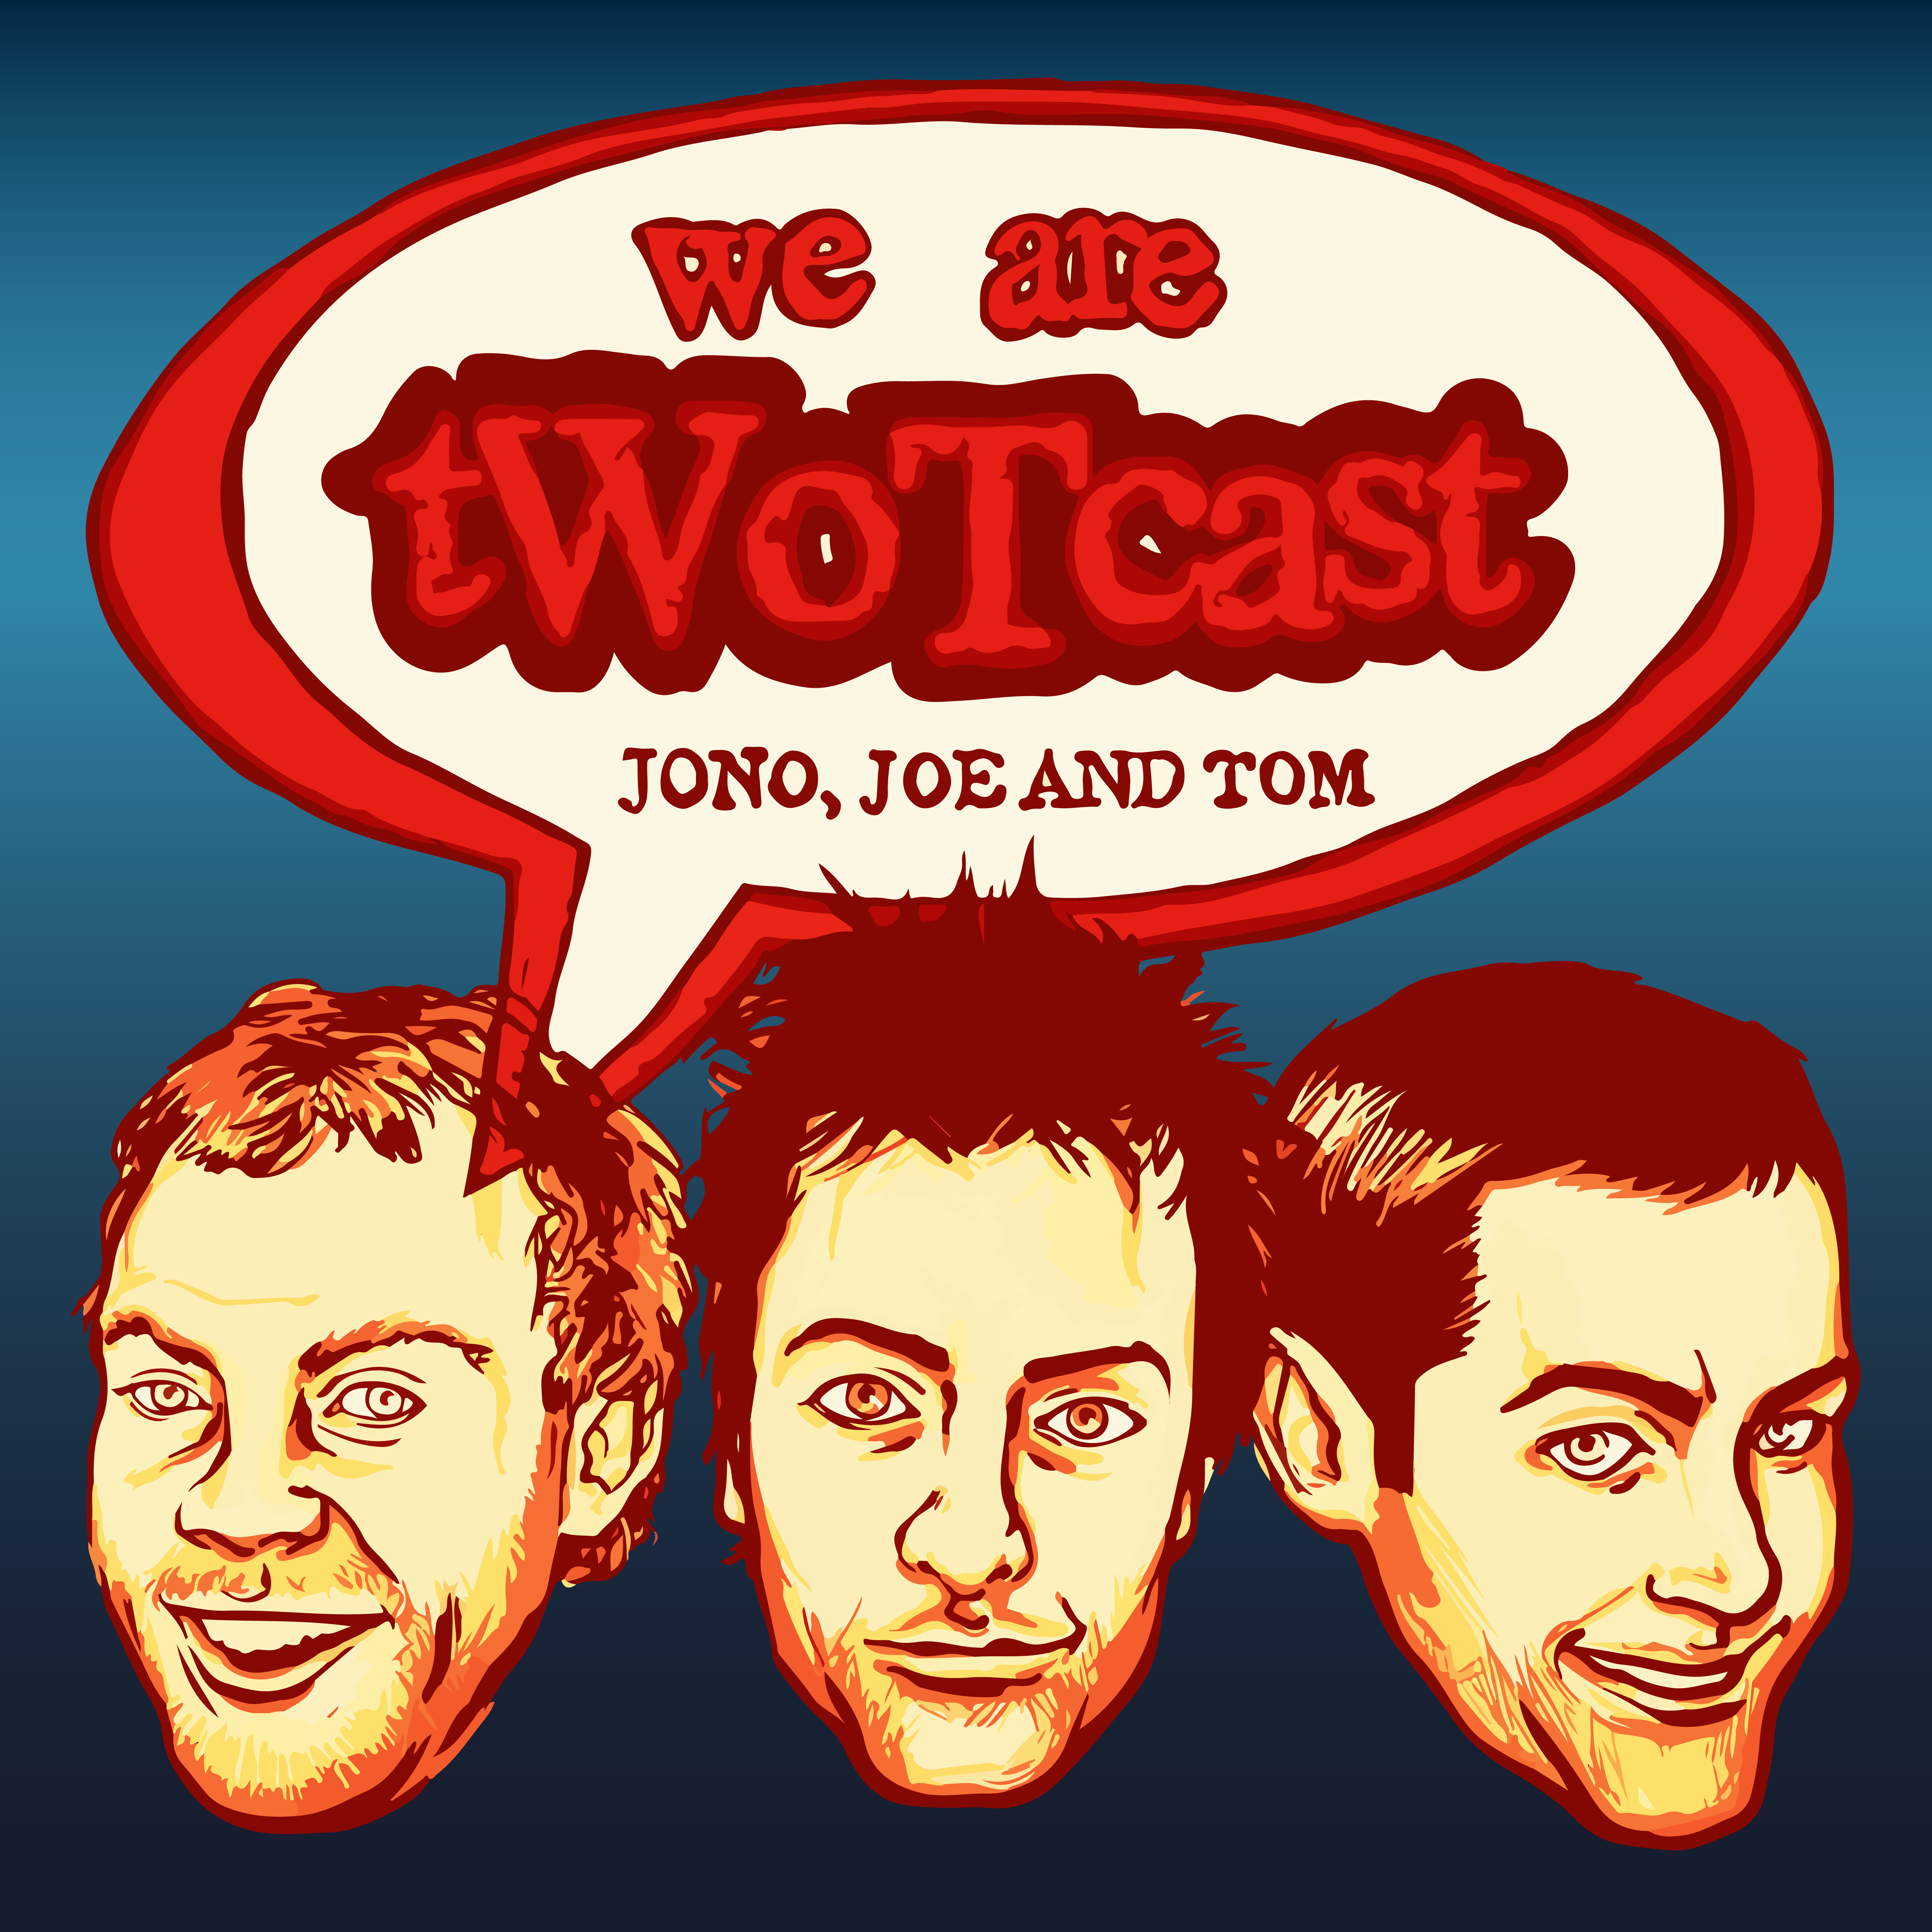 Artwork for tWoTcast episode 28